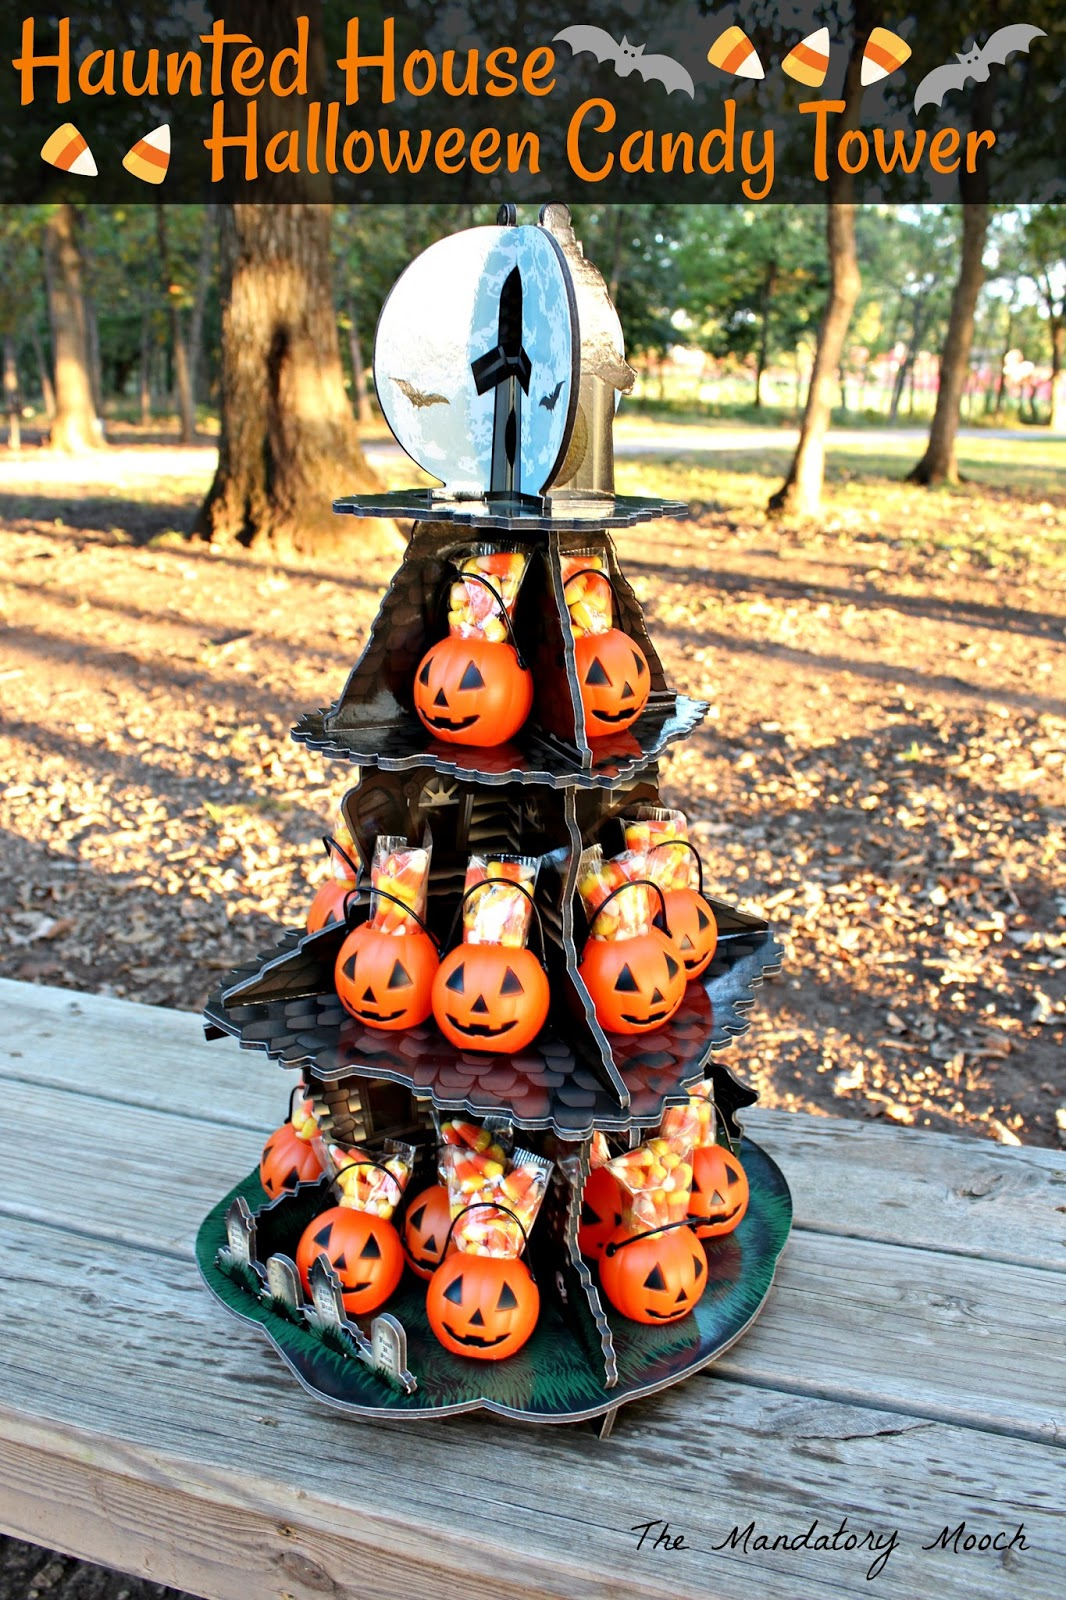 the mandatory mooch: haunted house halloween candy tower